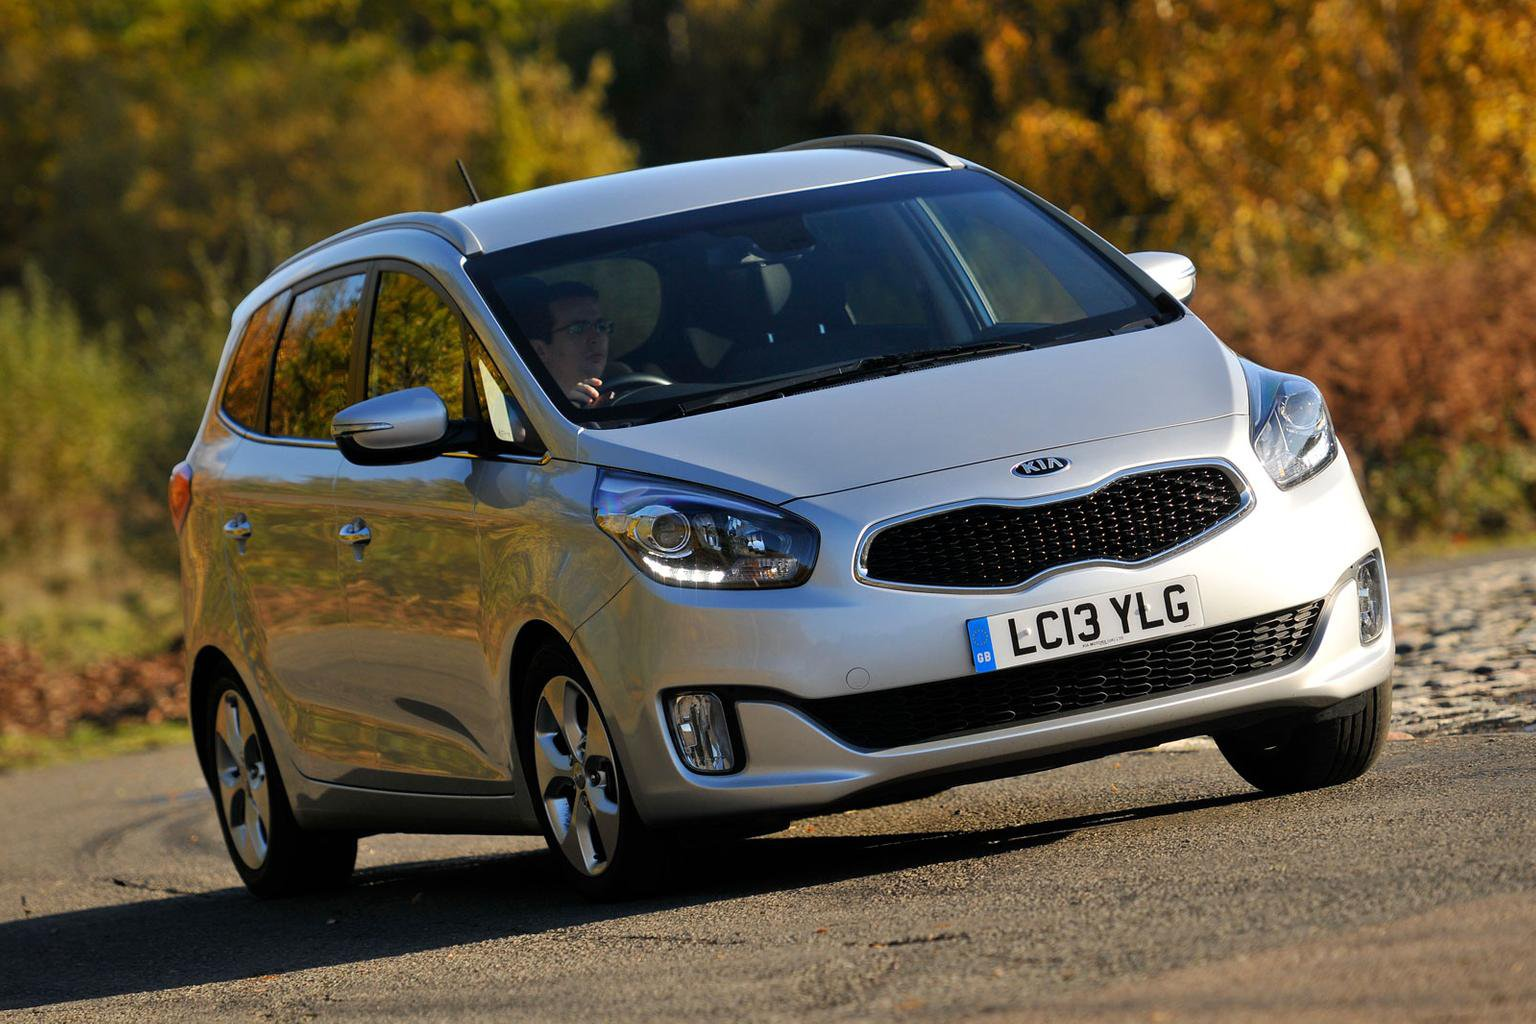 Deal of the day: Kia Carens